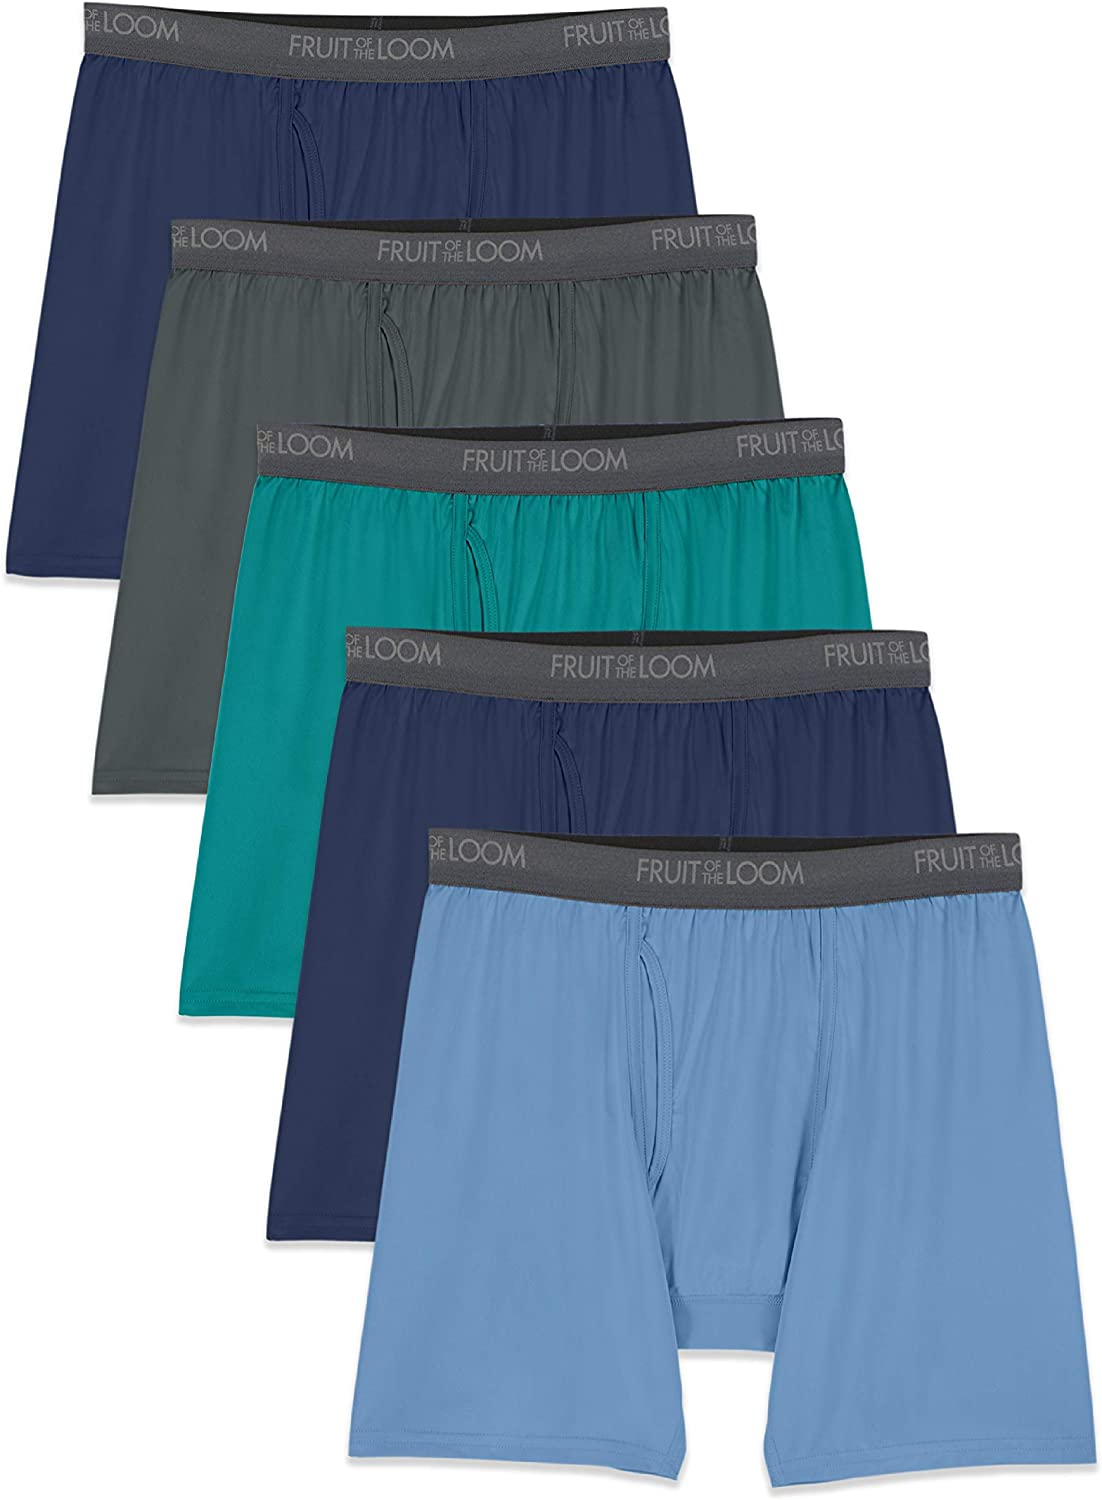 Fruit of the Loom Men's Lightweight Micro-Stretch Boxer Briefs